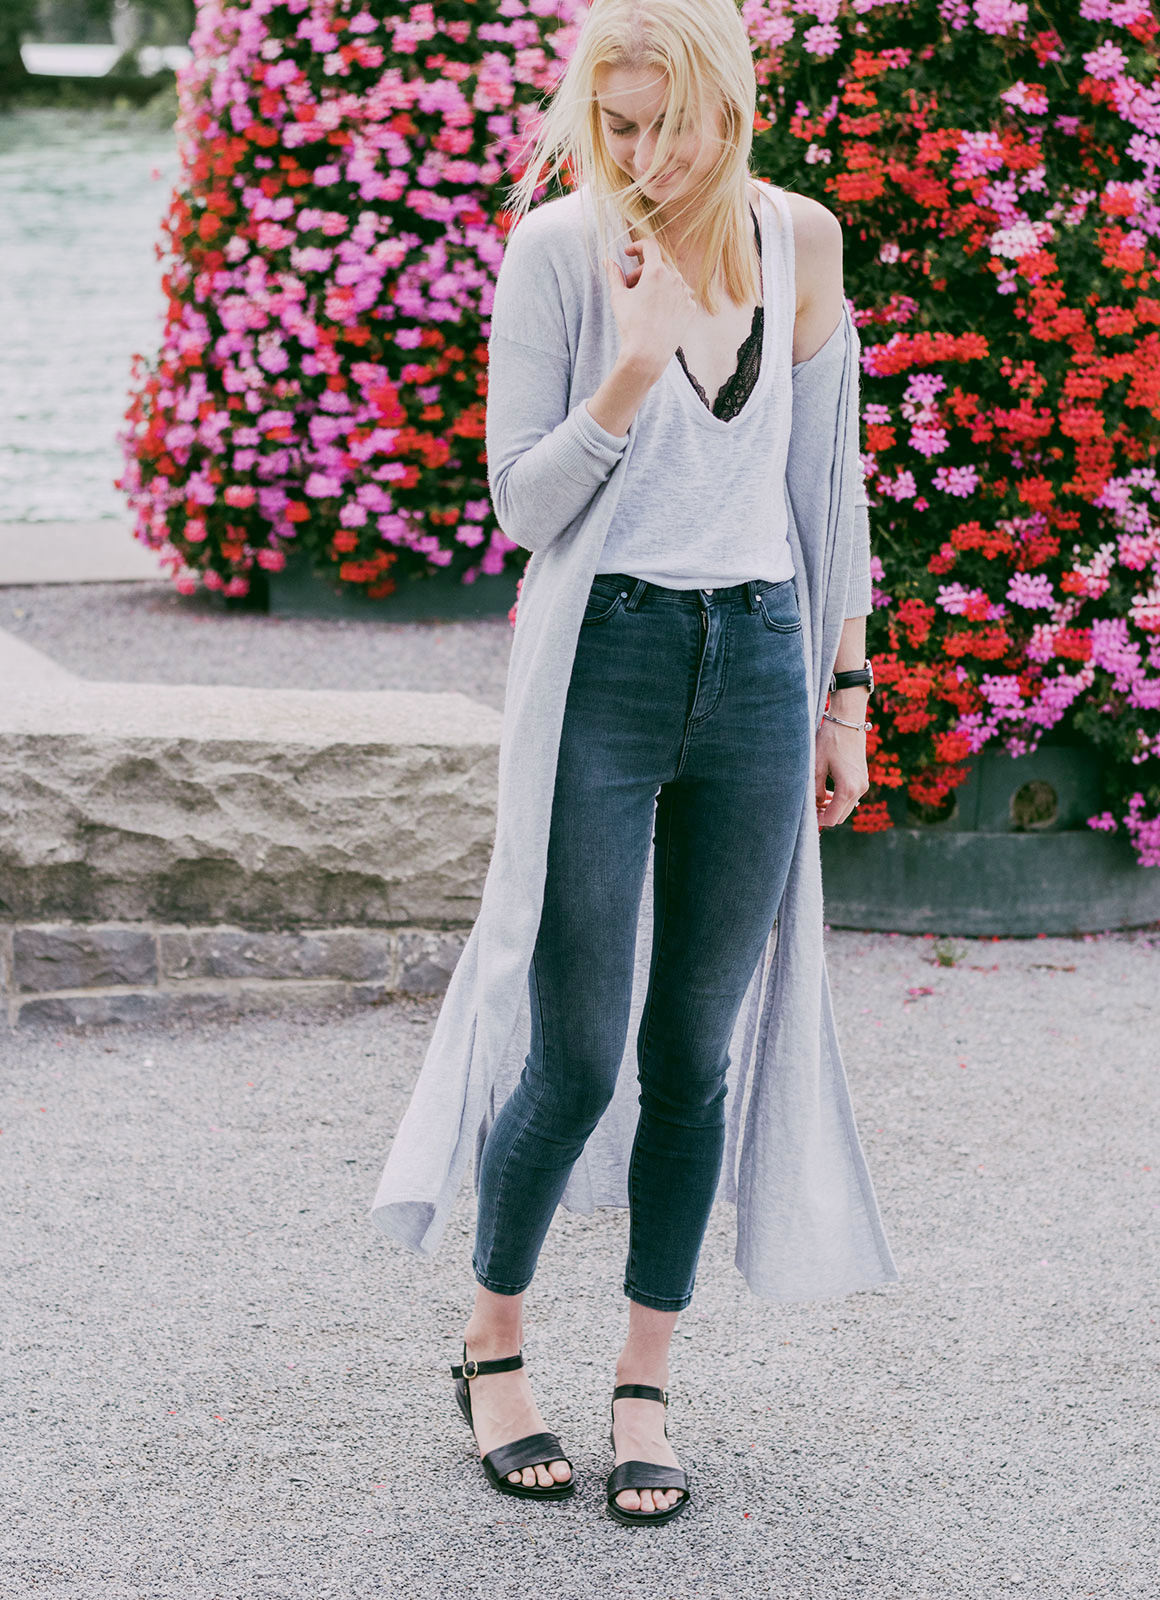 Sweet Details: How to wear the Lace Bralette | Jayde Archives